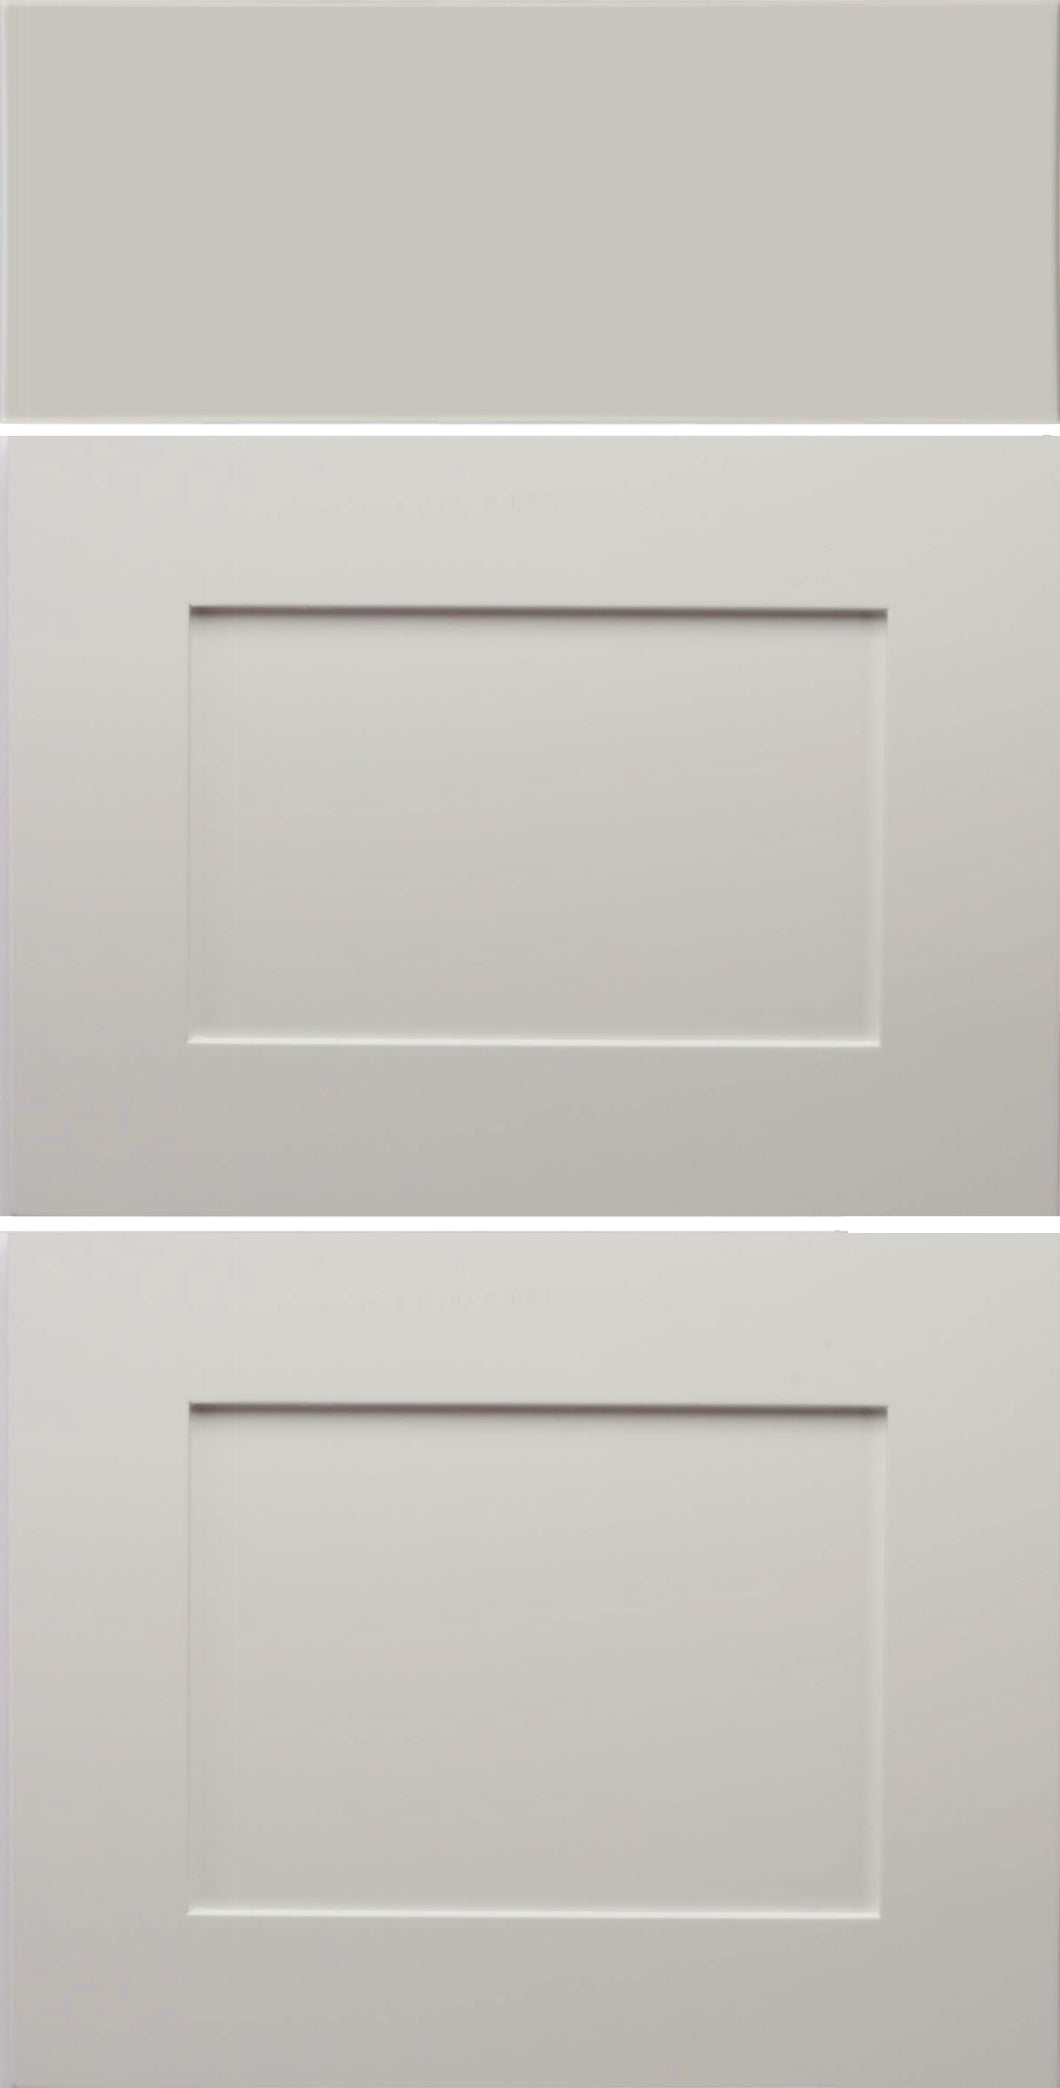 AART Shaker Drawer Fronts - 3 Drawer Set